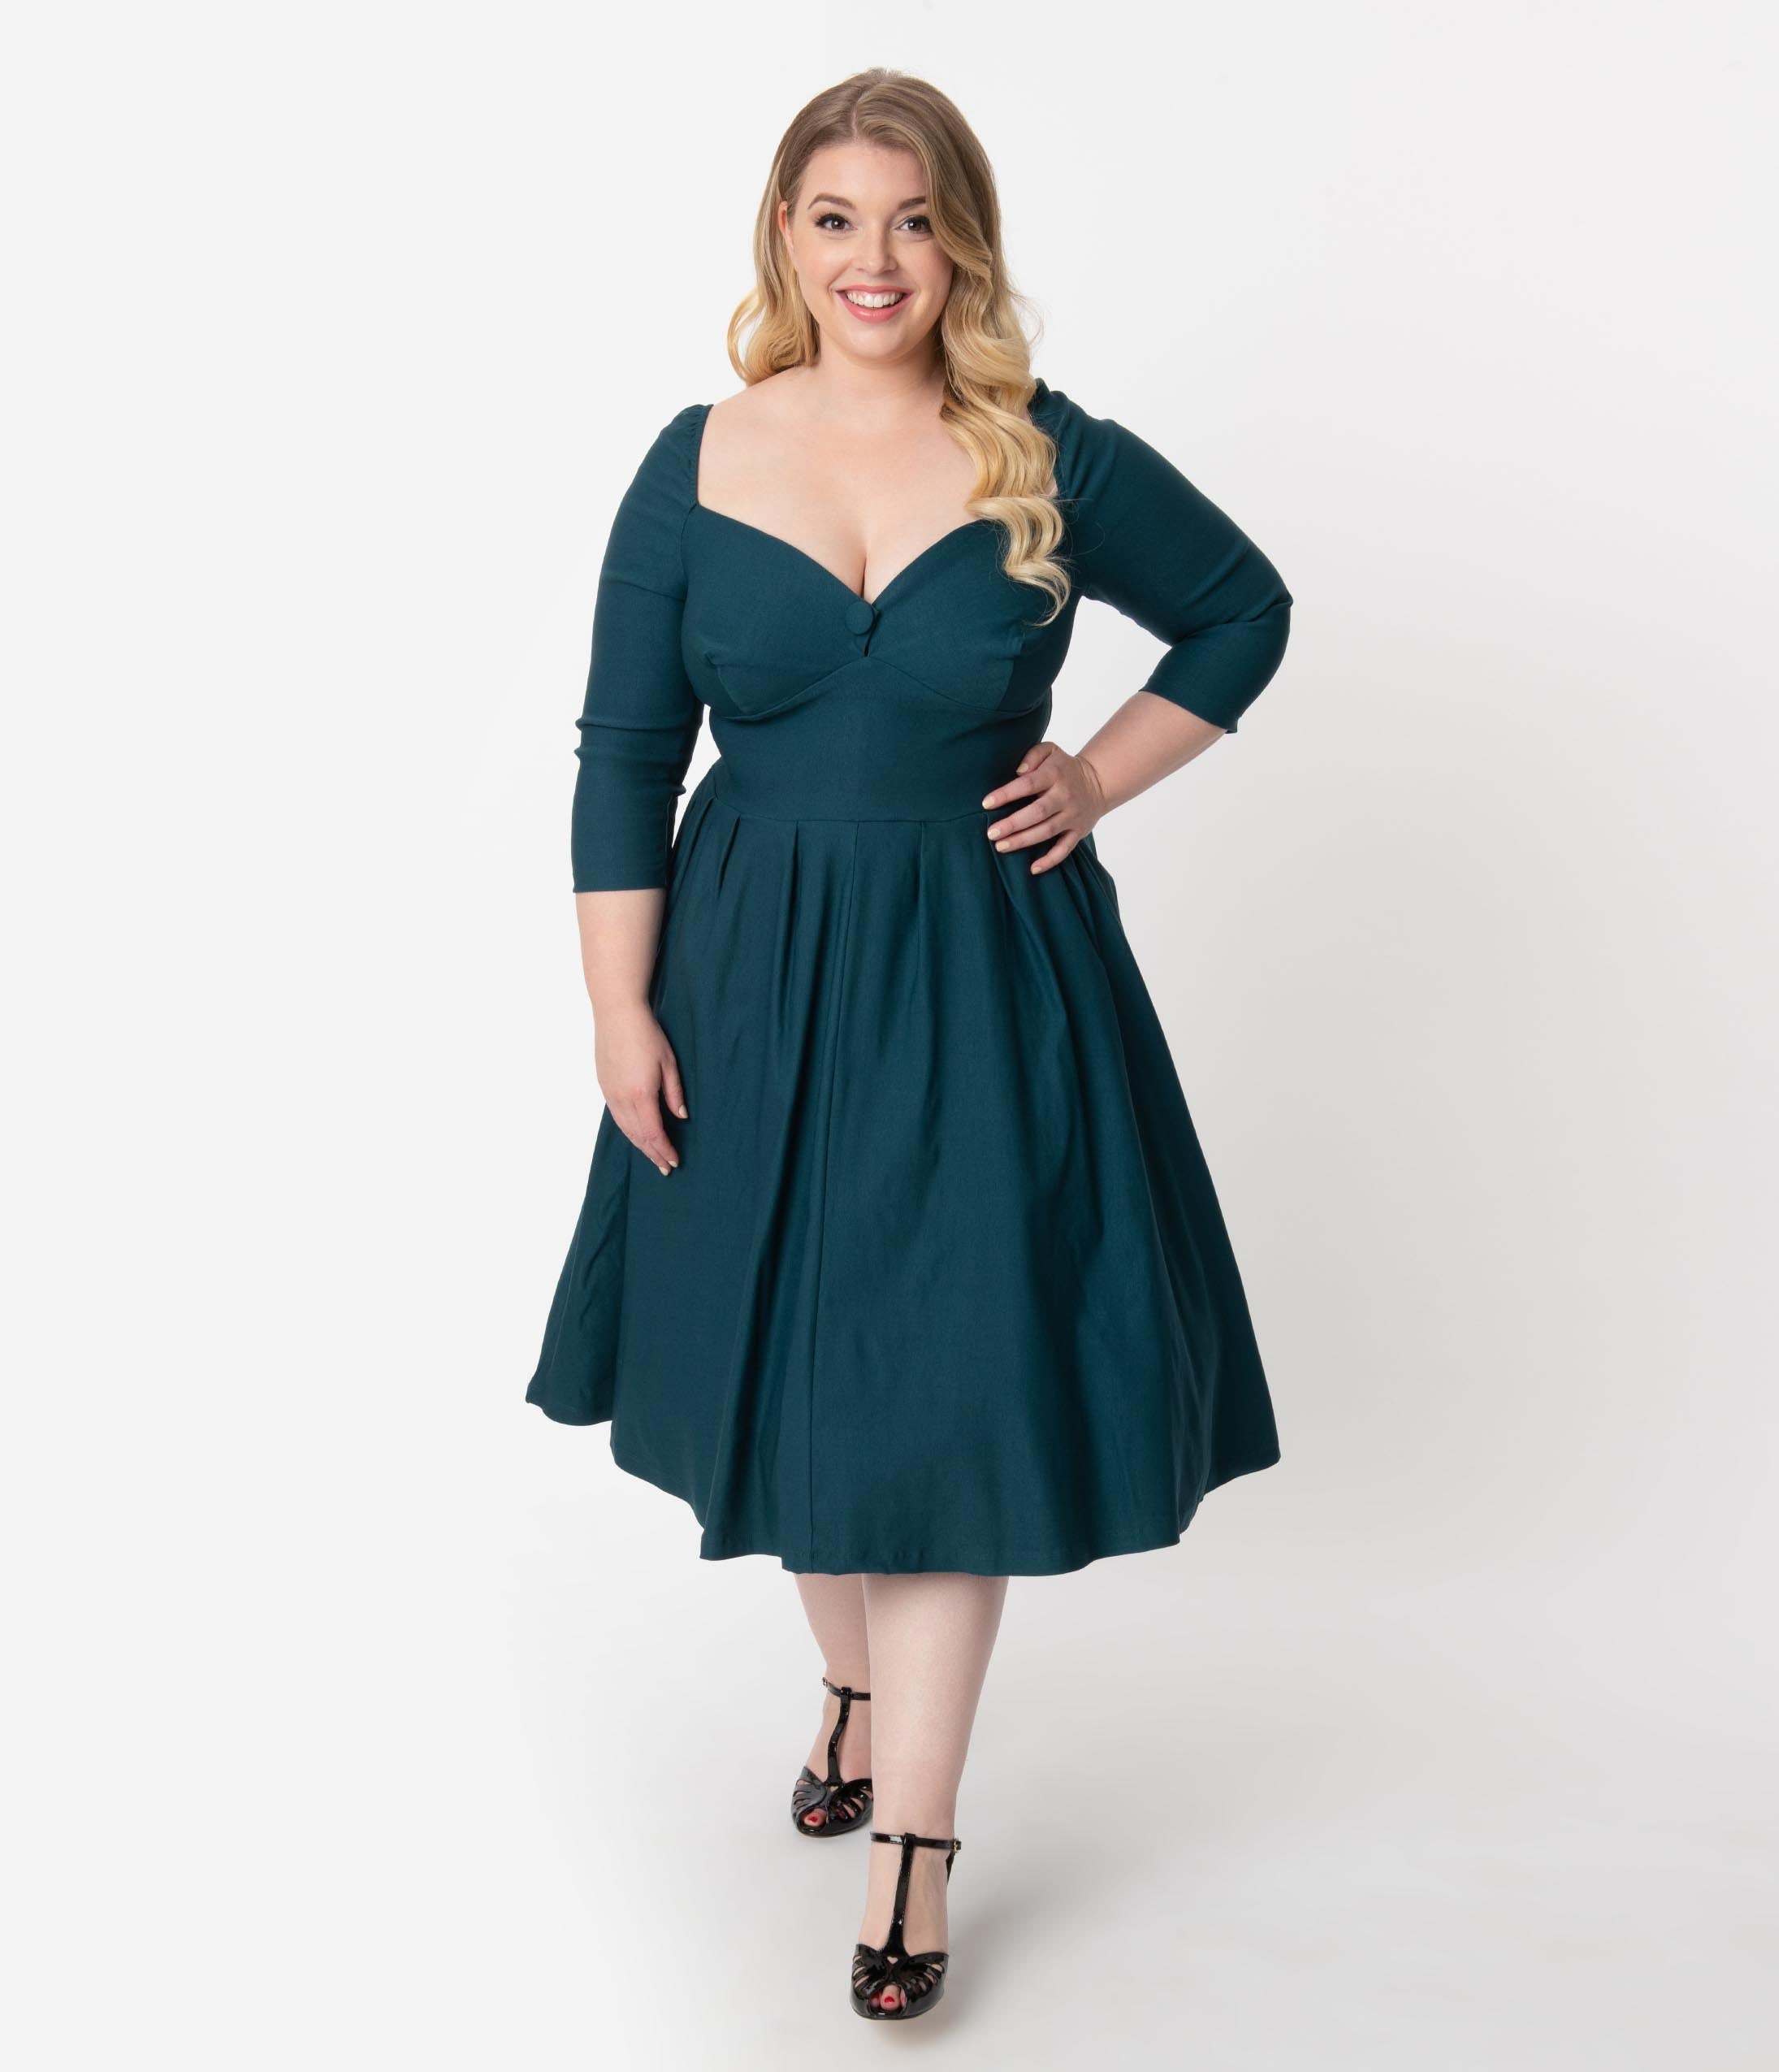 1950s Plus Size Dresses, Swing Dresses Unique Vintage Plus Size 1950S Style Dark Teal Bengaline Sweetheart Lamar Swing Dress $98.00 AT vintagedancer.com